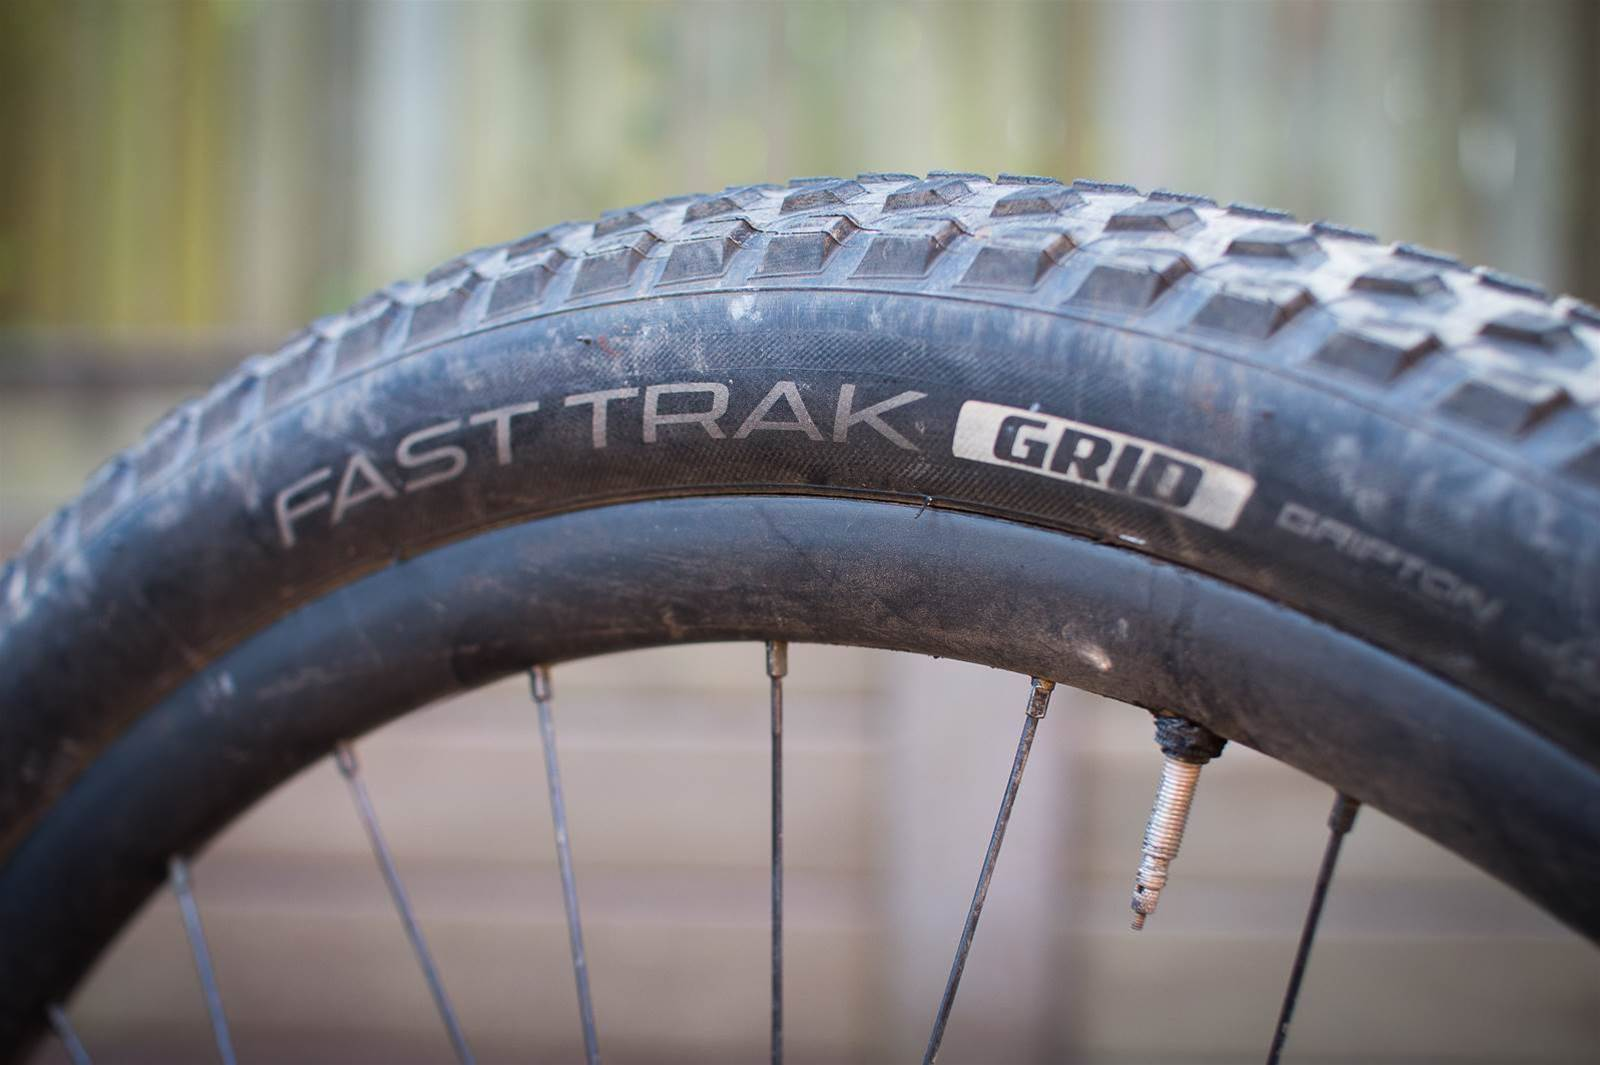 TESTED: Specialized Fast Trak GRID Gripton tyres